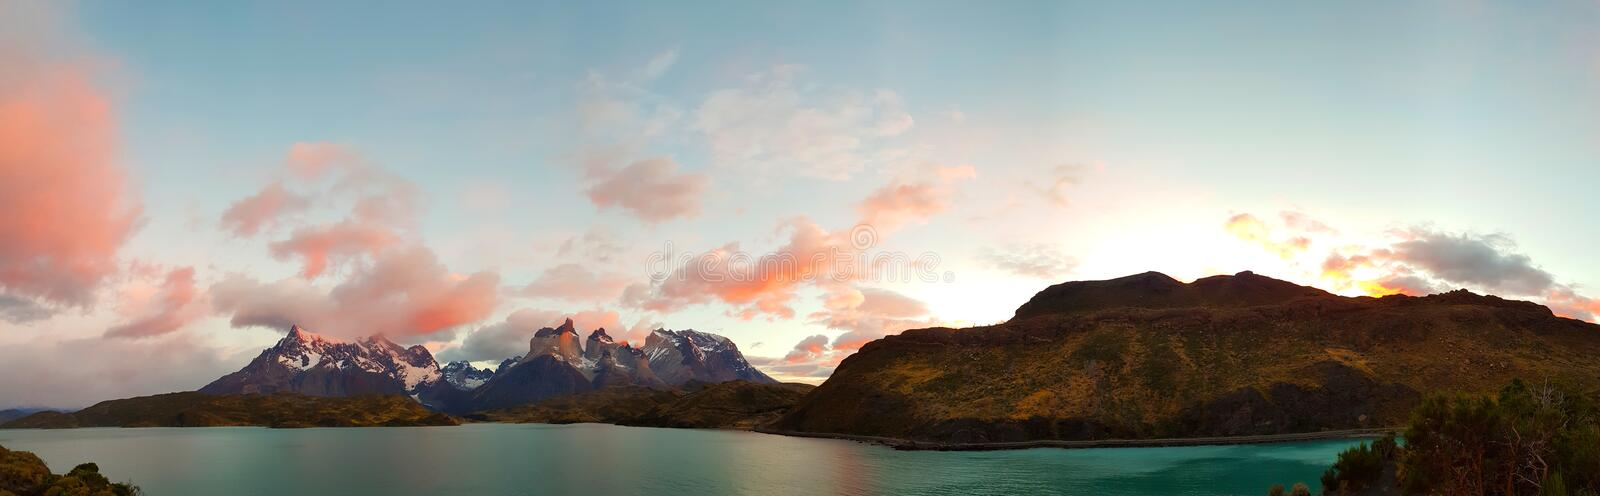 Sonnenaufgang: See Pehoe und Berge Torres Del Paine, Chile stockfotografie